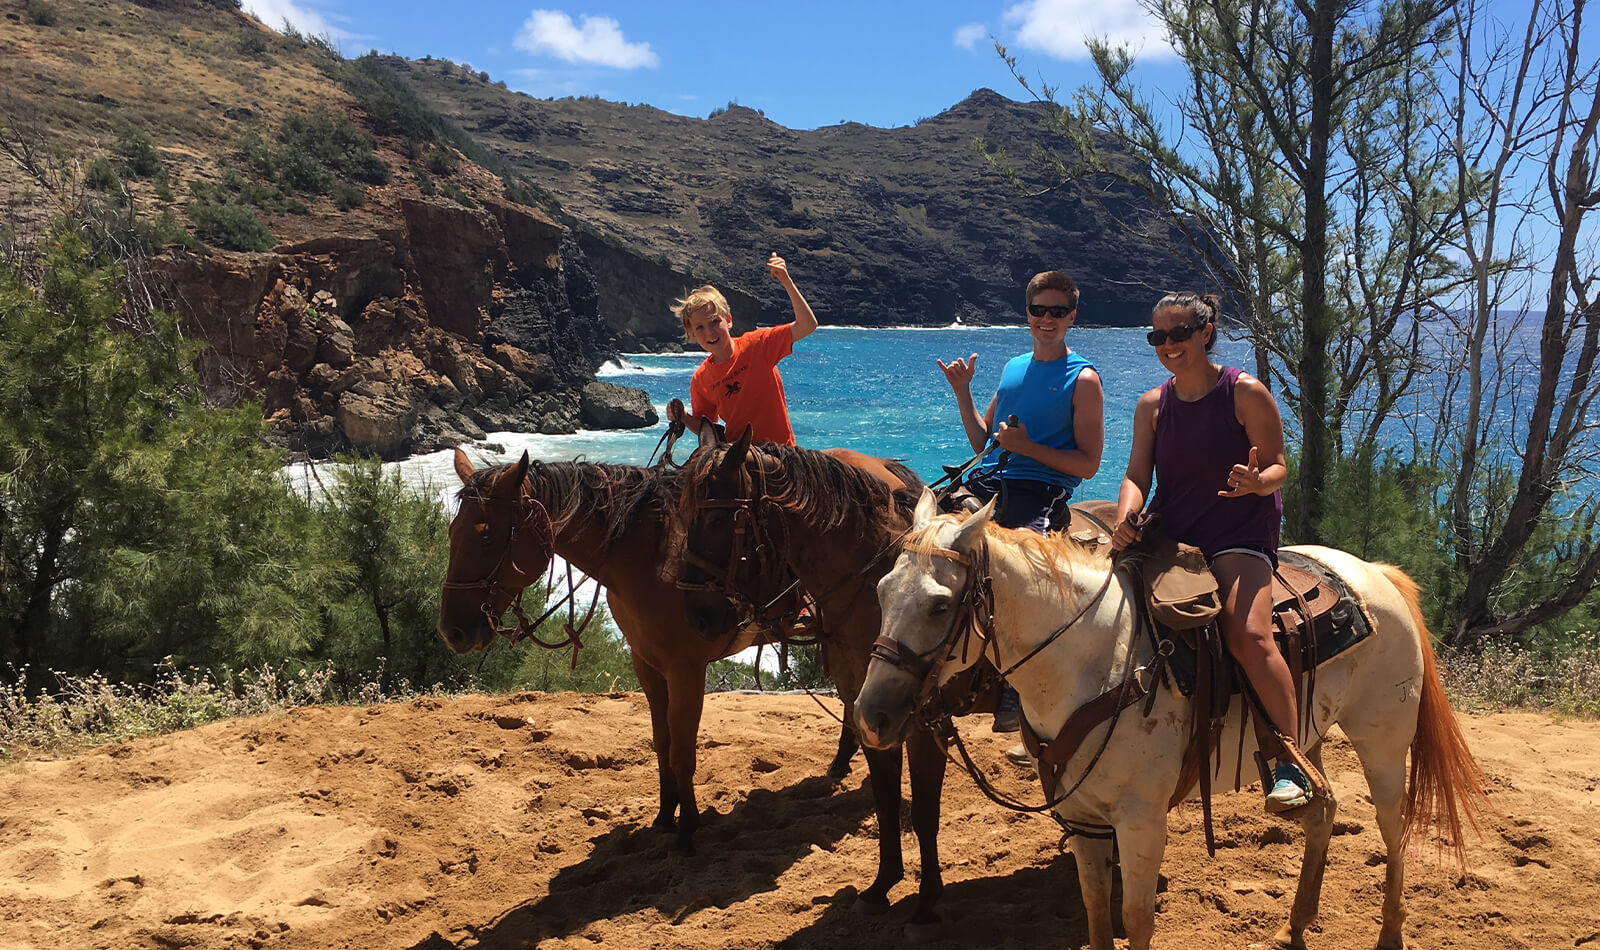 Nicole and her family riding horses on their most recent trip to Hawaii.